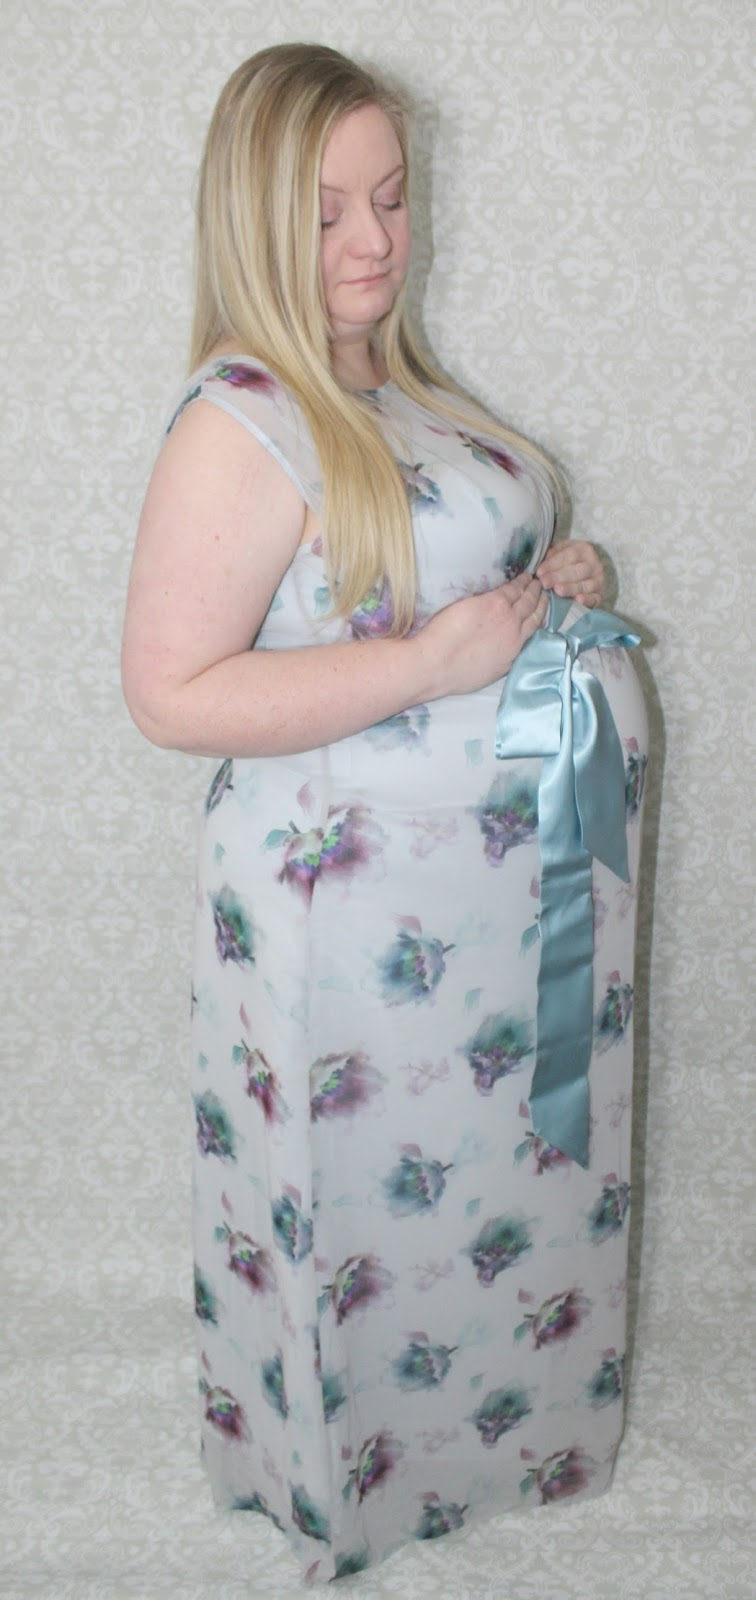 Tiffany Rose Maternity Occasion Wear Review | Sparkles and ...